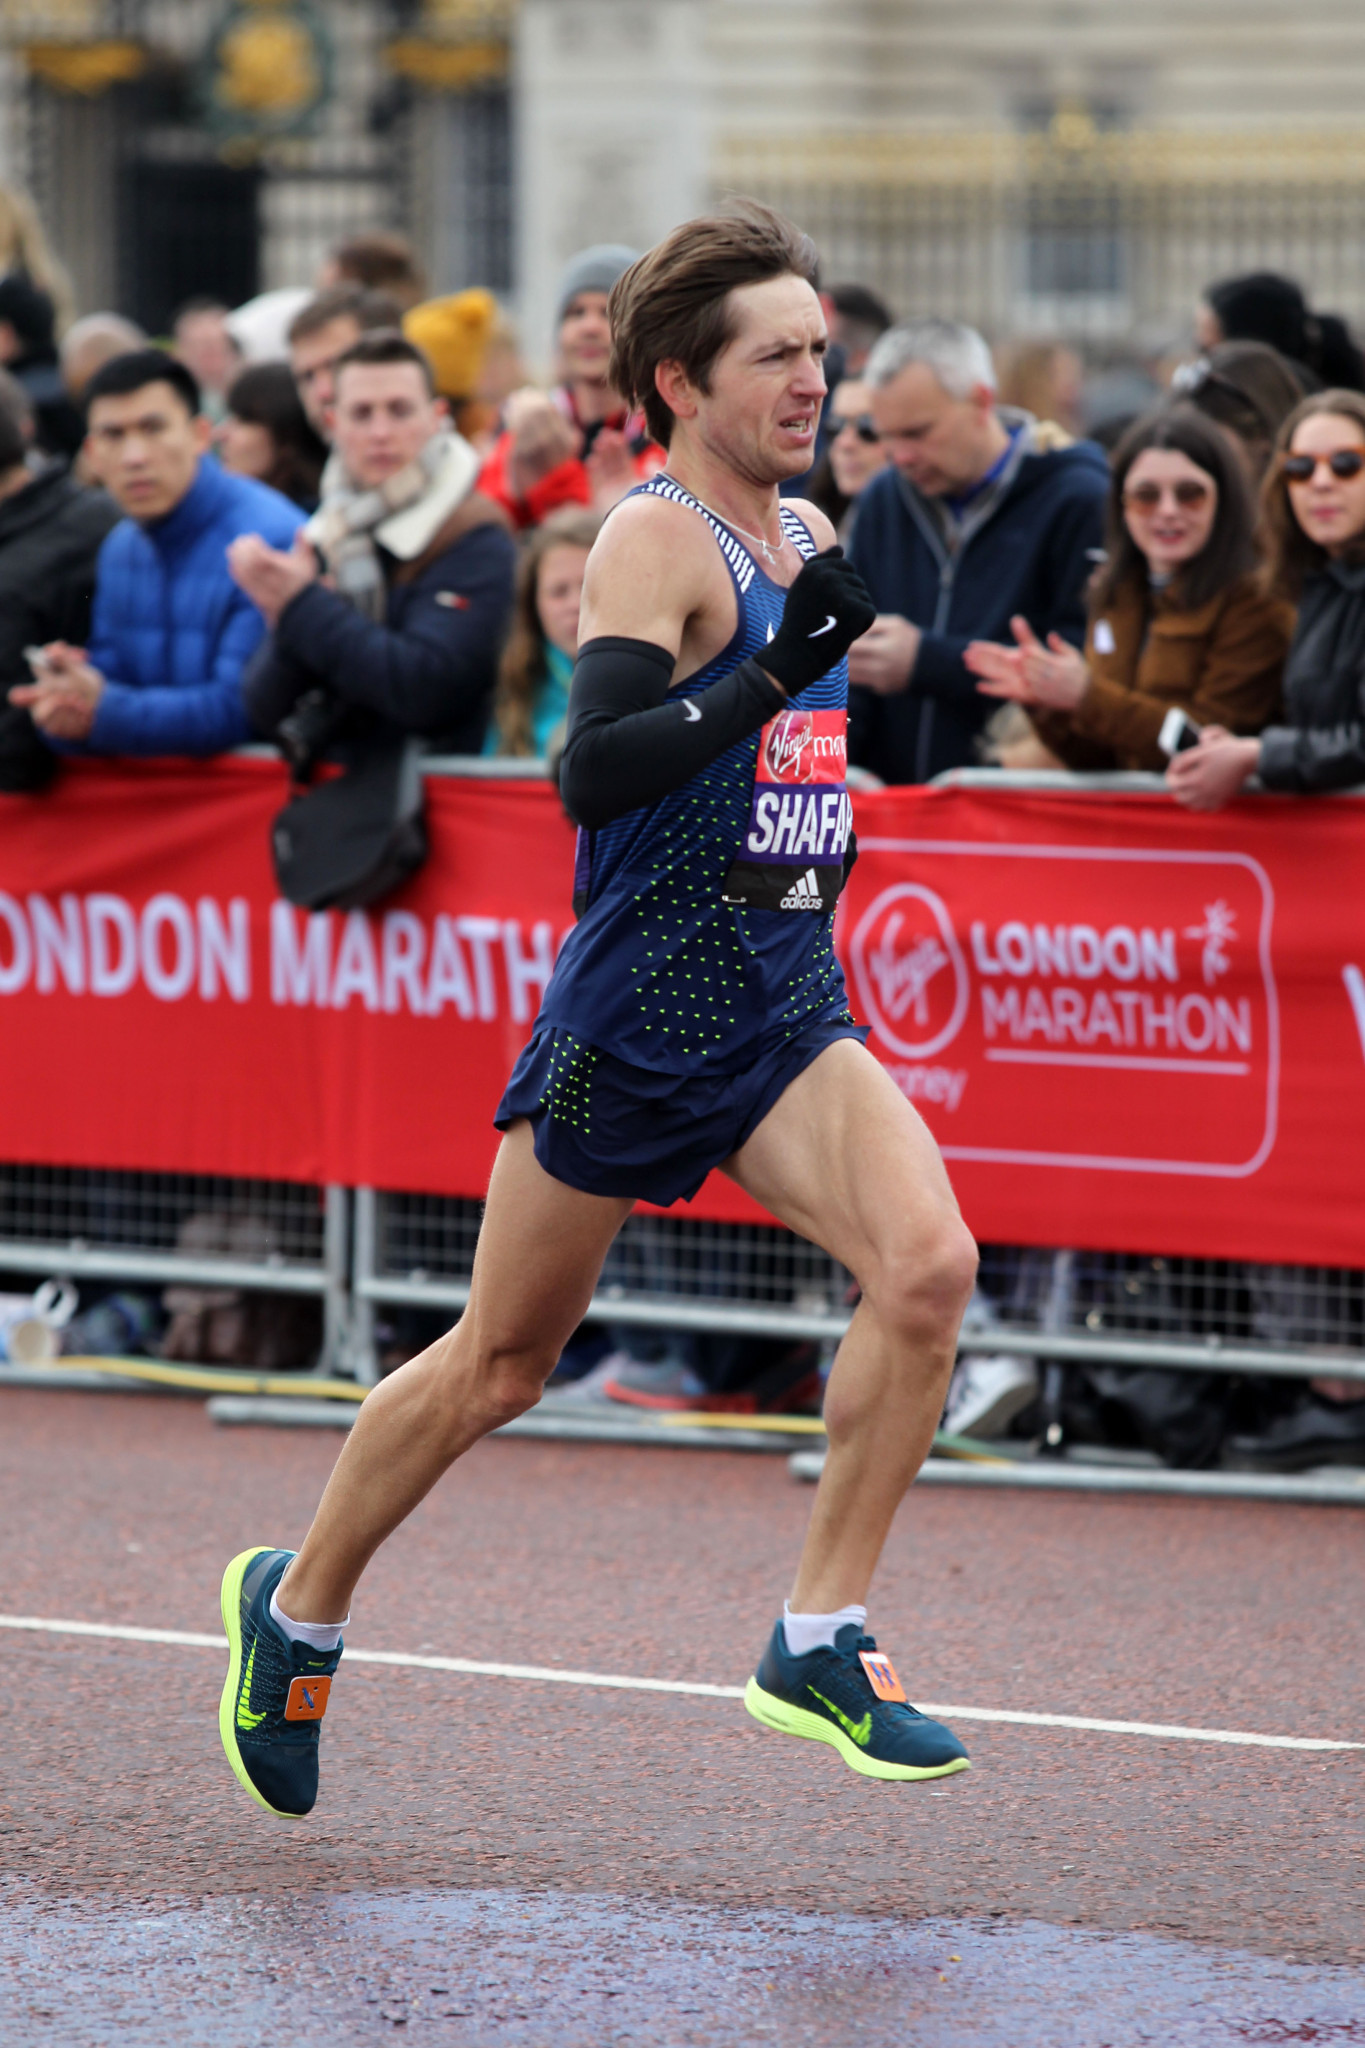 AIU announce sanction for long-distance runner Shafar from 2017